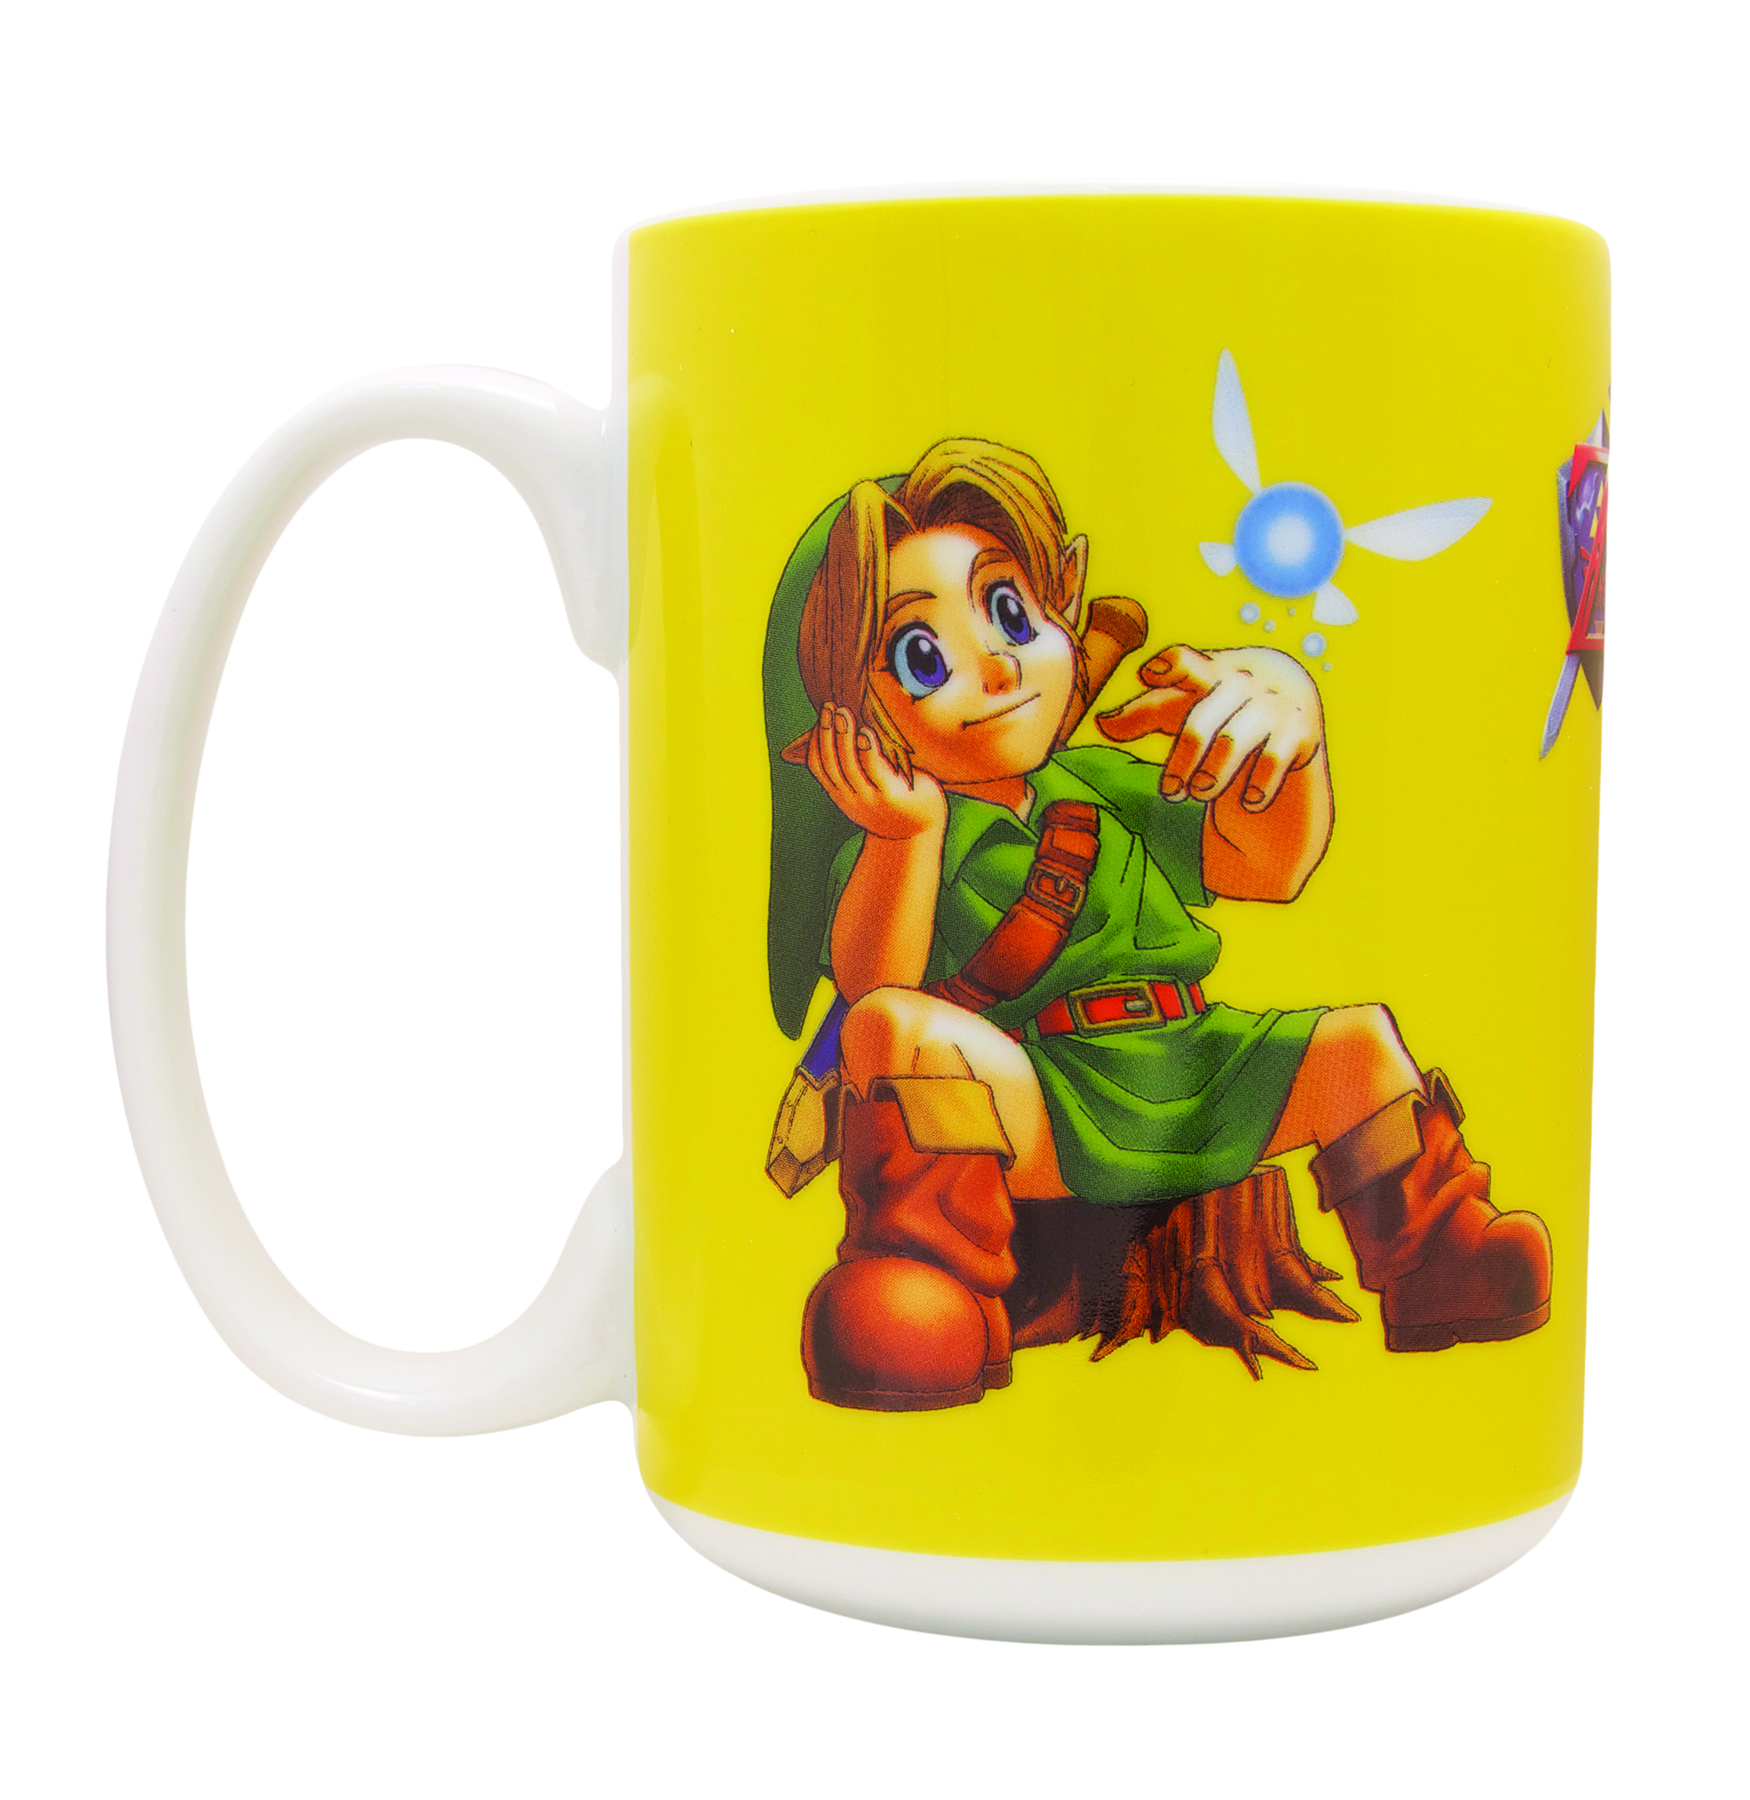 LEGEND OF ZELDA OCARINA OF TIME LIL LINK MUG